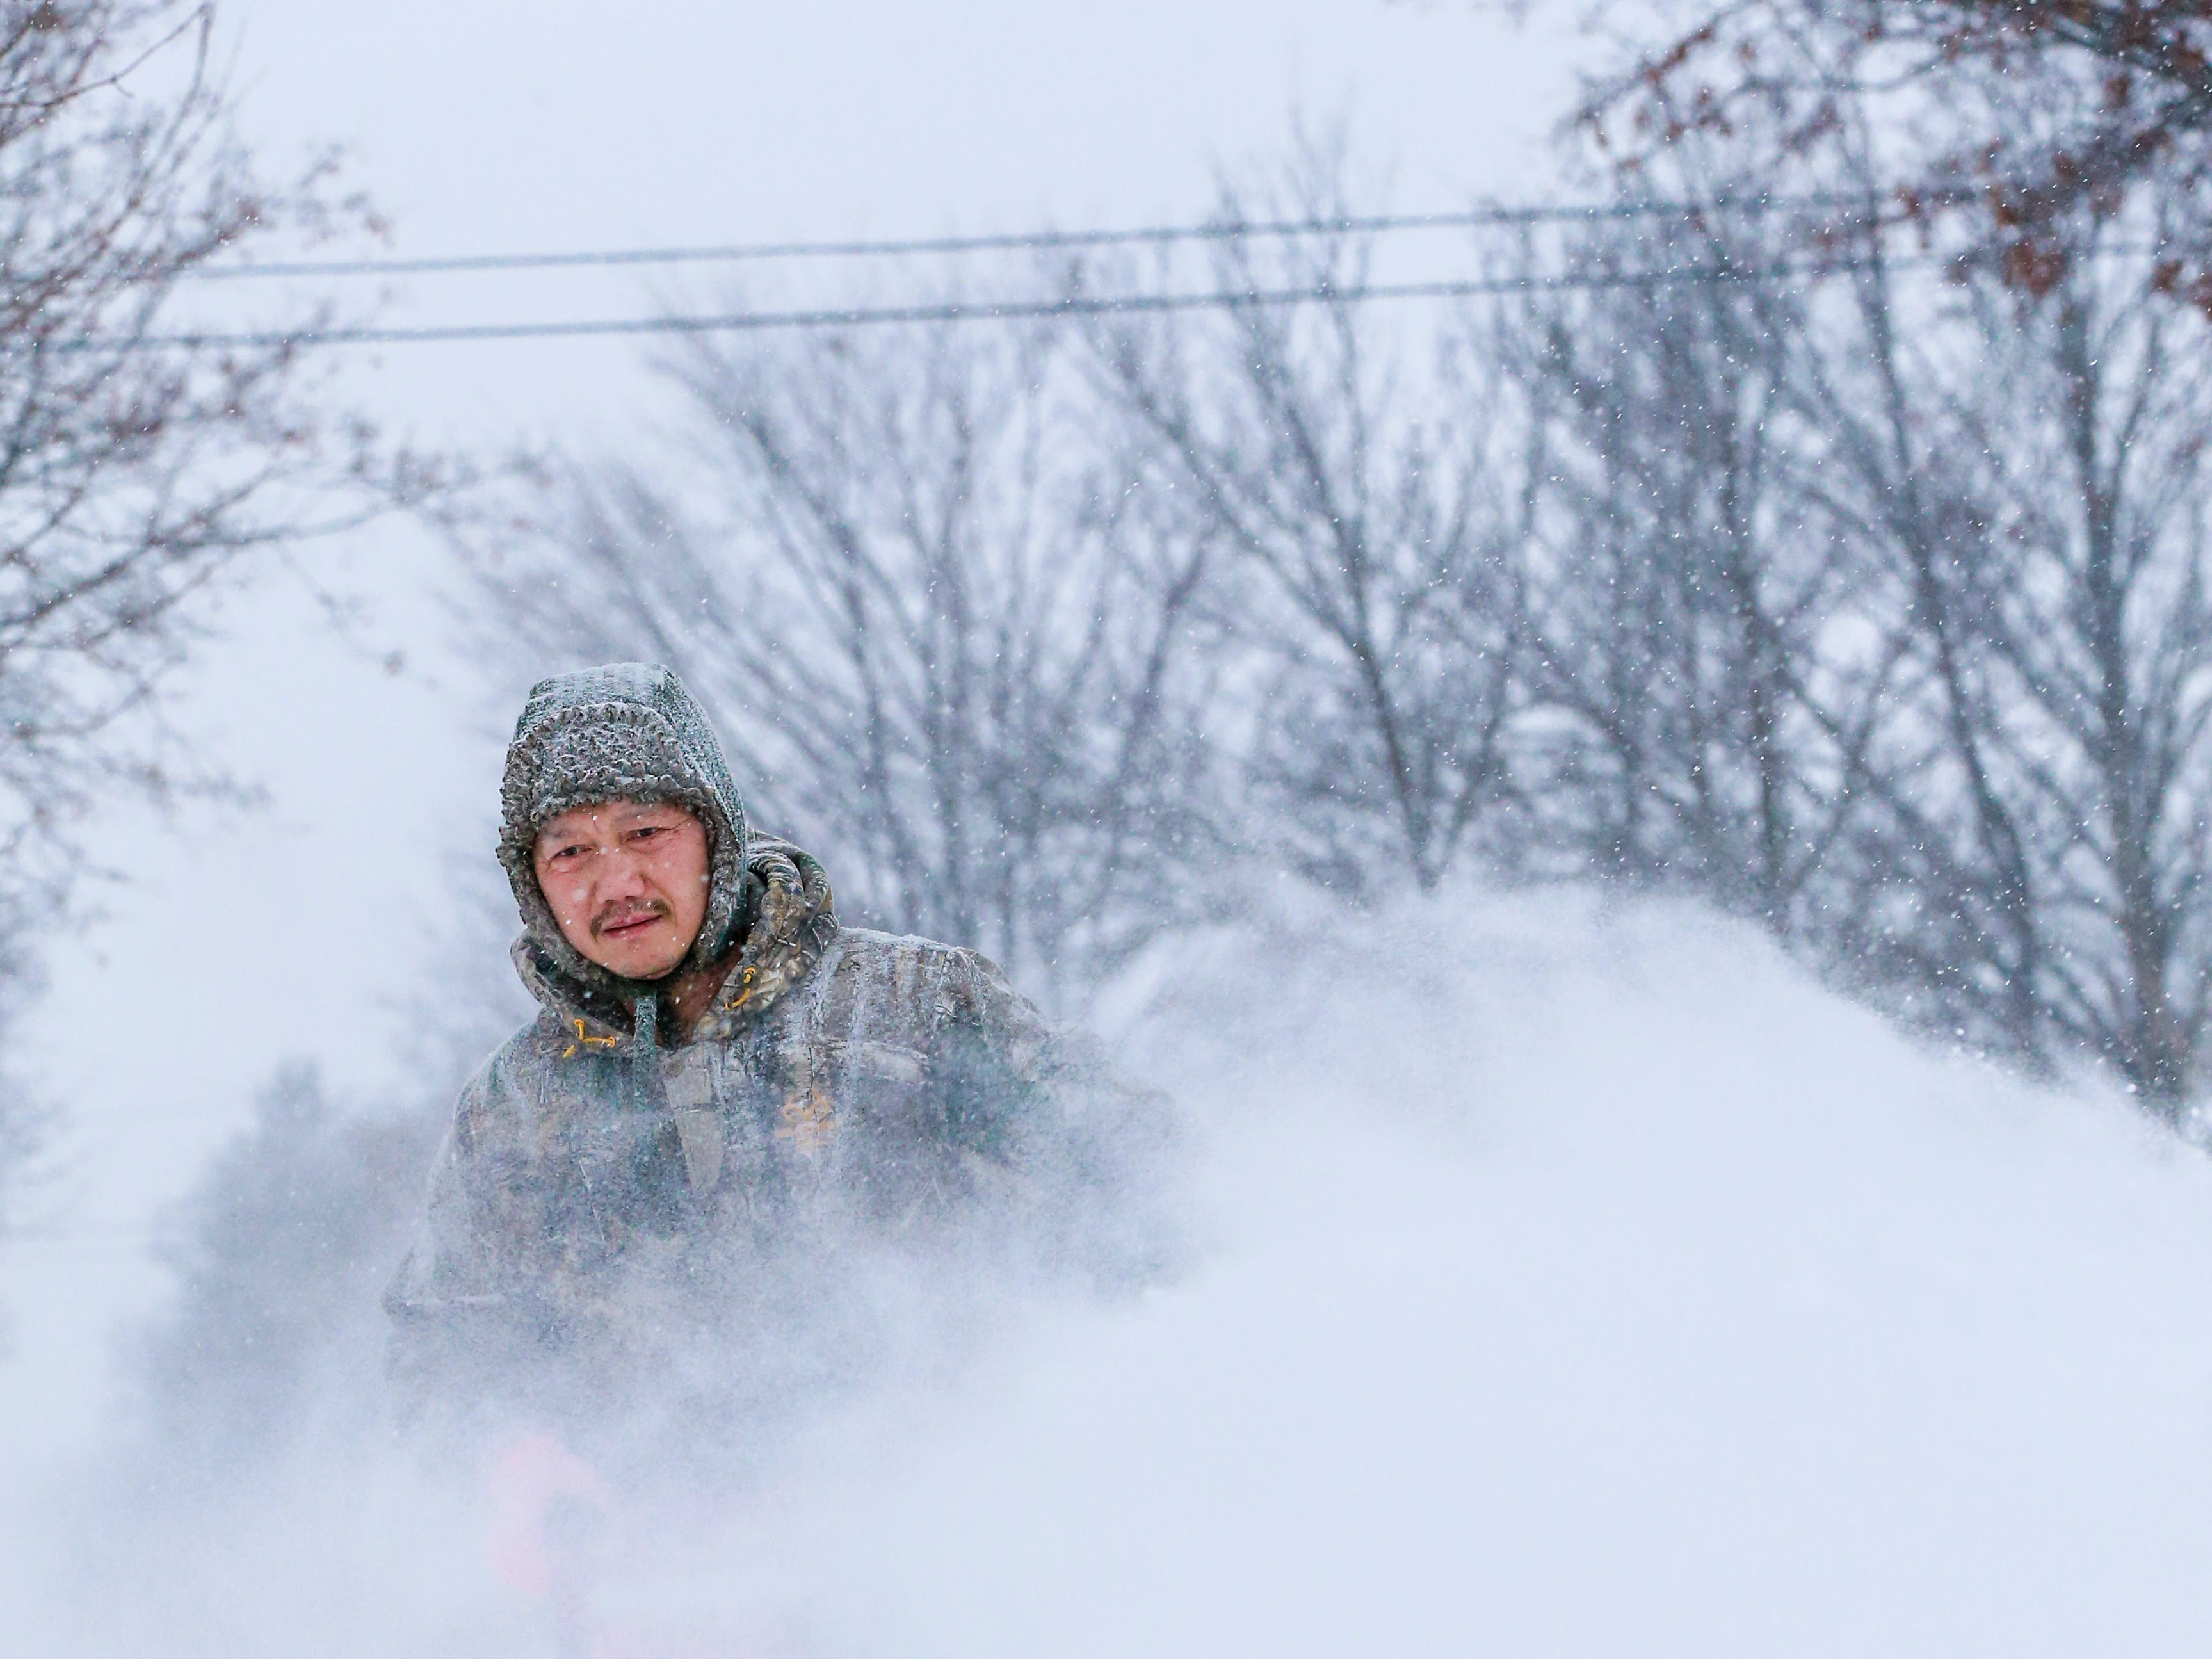 Kangshoua Her checks his way while operating his snowblower on his sidewalk after a snowstorm Monday, Jan. 28, 2019, in Wausau, Wis.